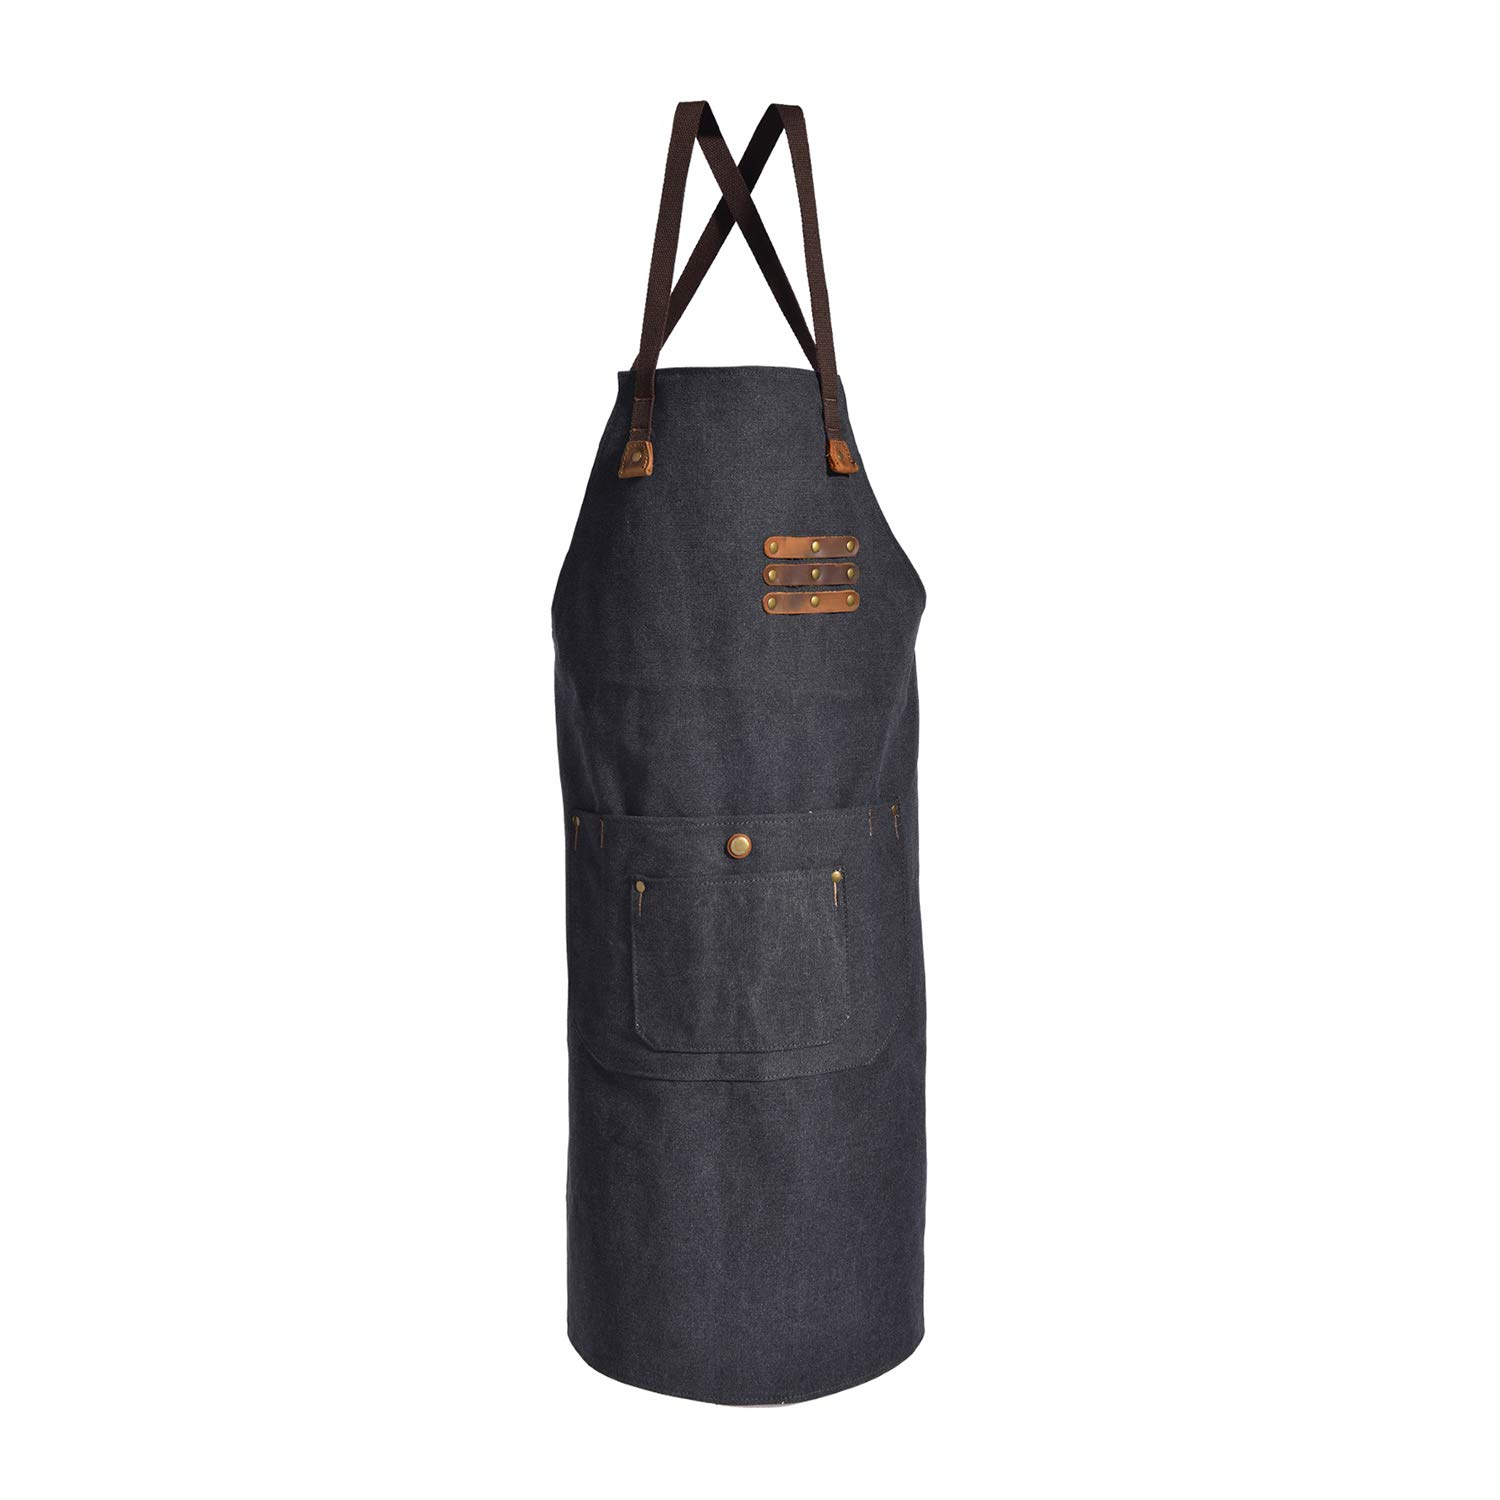 Canvas Shop Apron for Men & Women  Heavy Duty Work Apron with Pocket & Cross-Back Straps   Adjustable Tool Apron M to XXL(Grey) by ruizhixuan (Image #6)